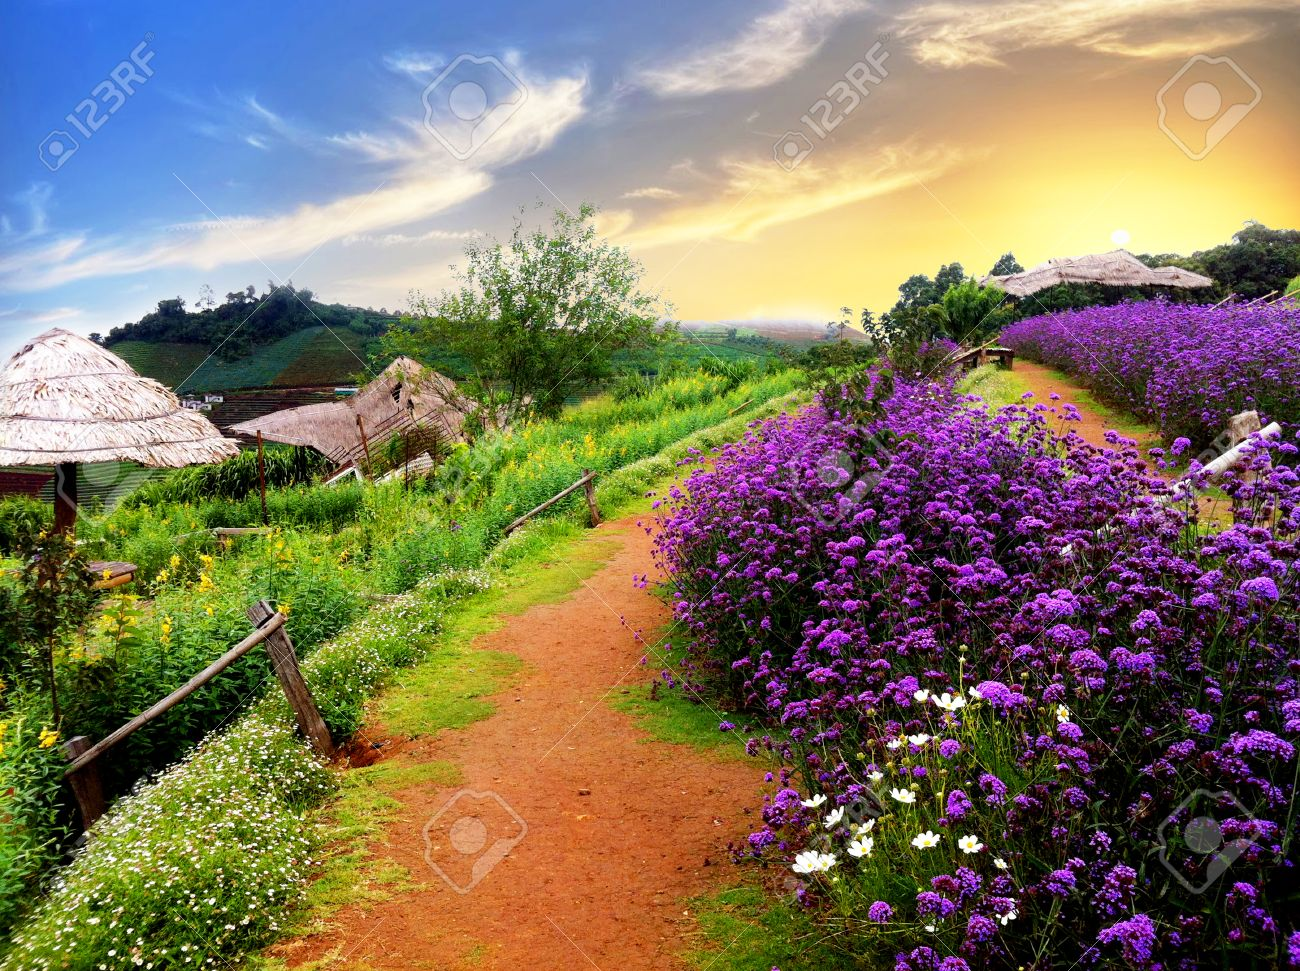 Beautiful Scenery Of Flowers And Mountain Stock Photo Picture And Royalty Free Image Image 30166965